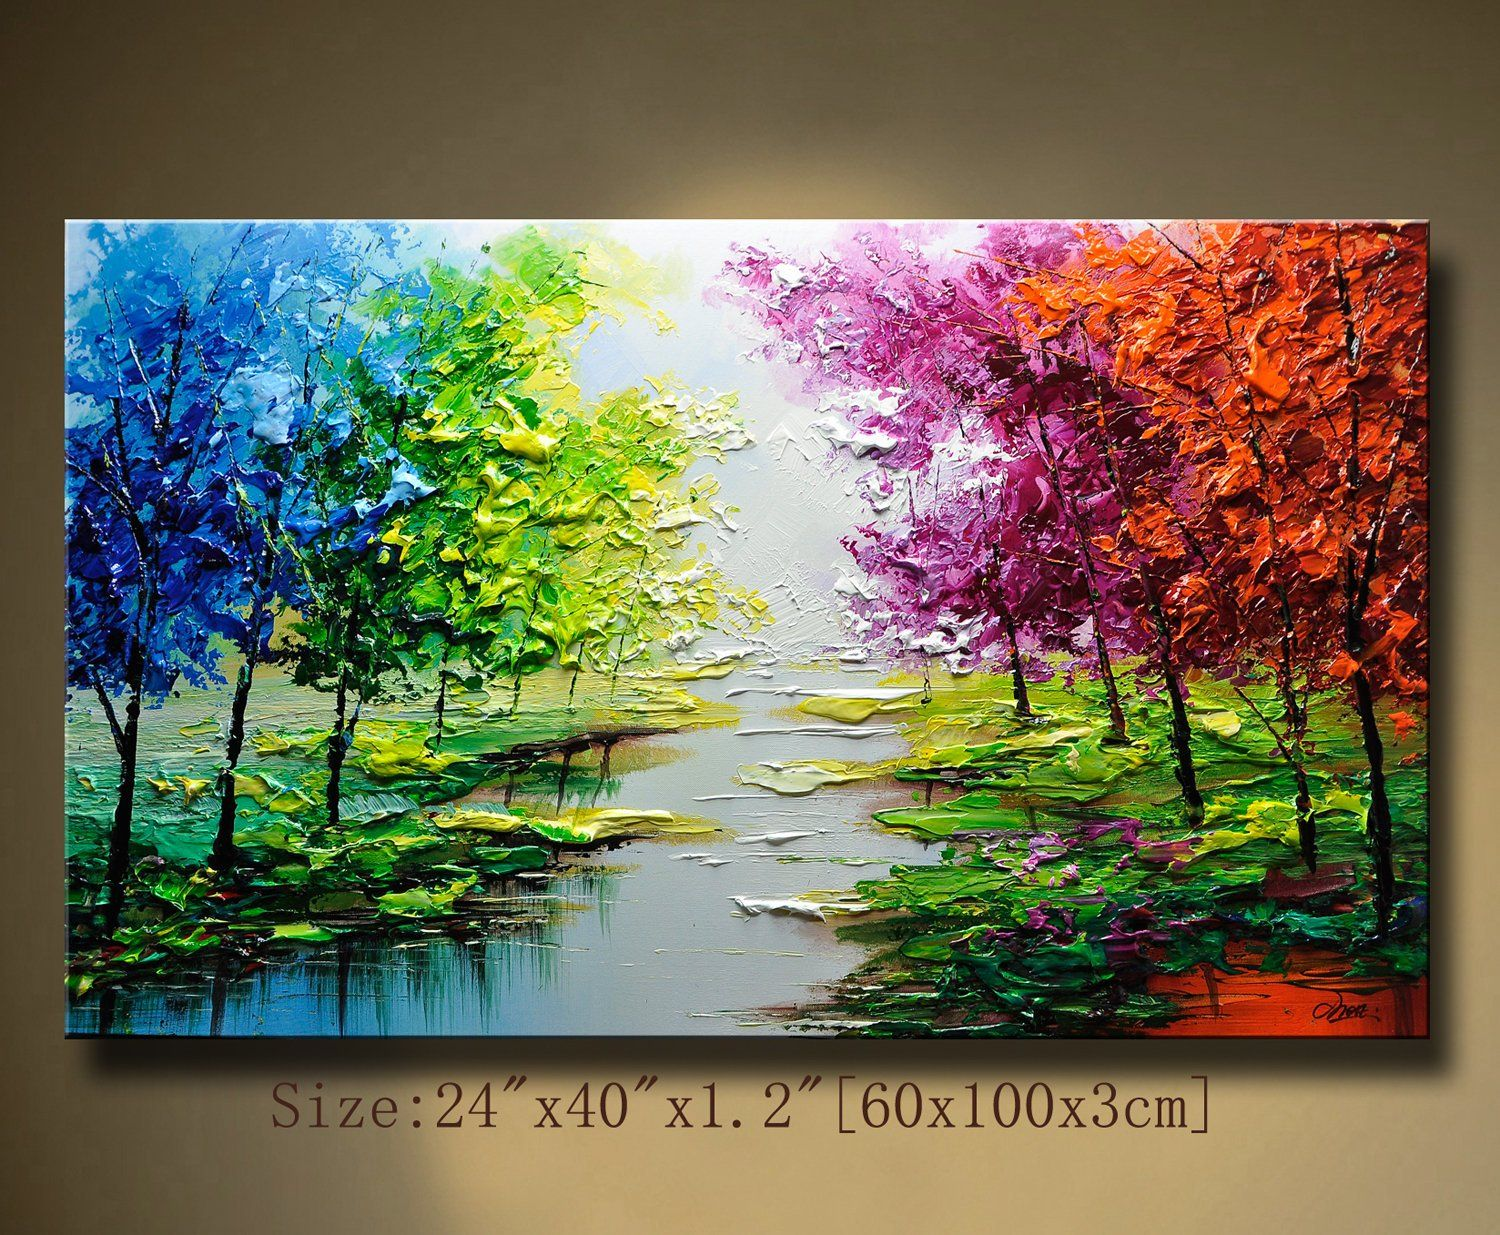 Contemporary Wall Artpalette Knife Paintingcolorful Etsy Abstract Wall Painting Colorful Landscape Paintings Texture Painting On Canvas